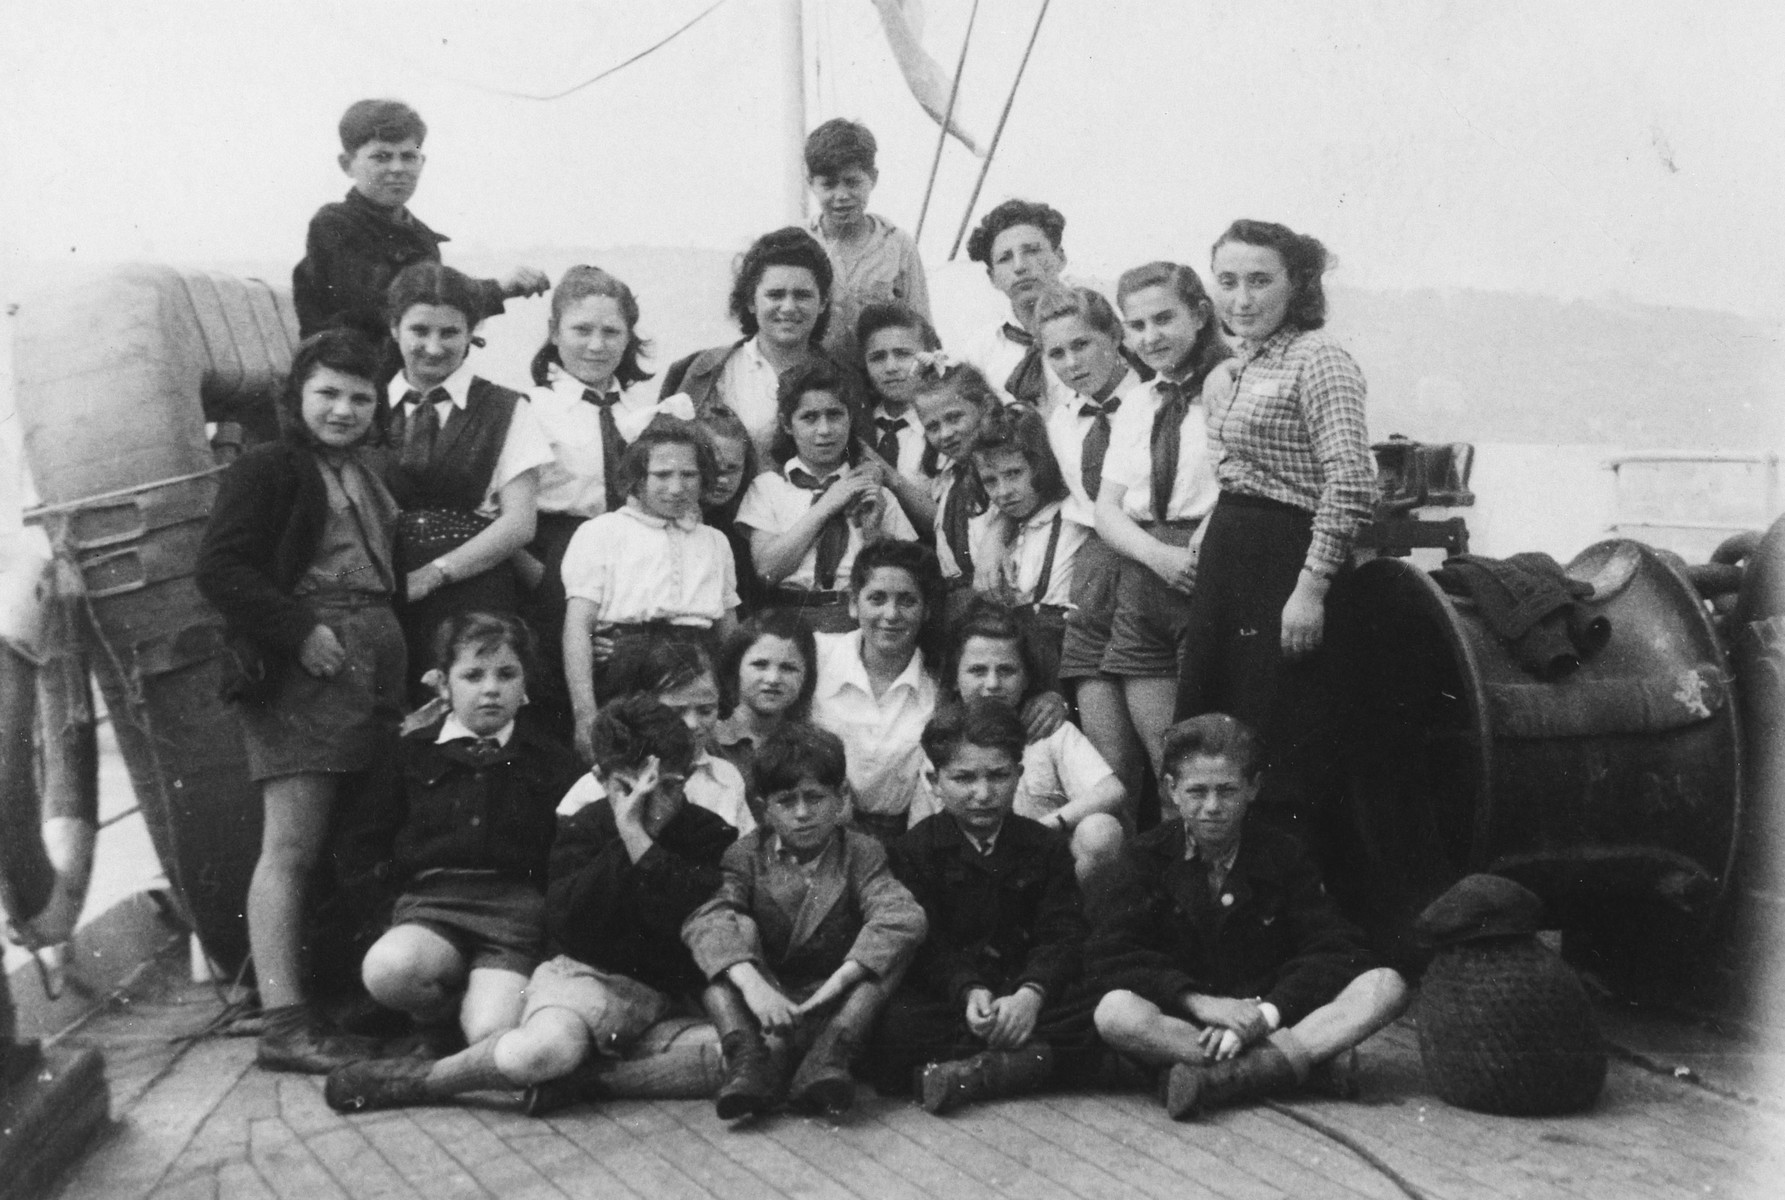 Group portrait of Jewish children en route to Palestine on board the Kedma.  Pictured with them is their counselor, Esther Menaker (center).